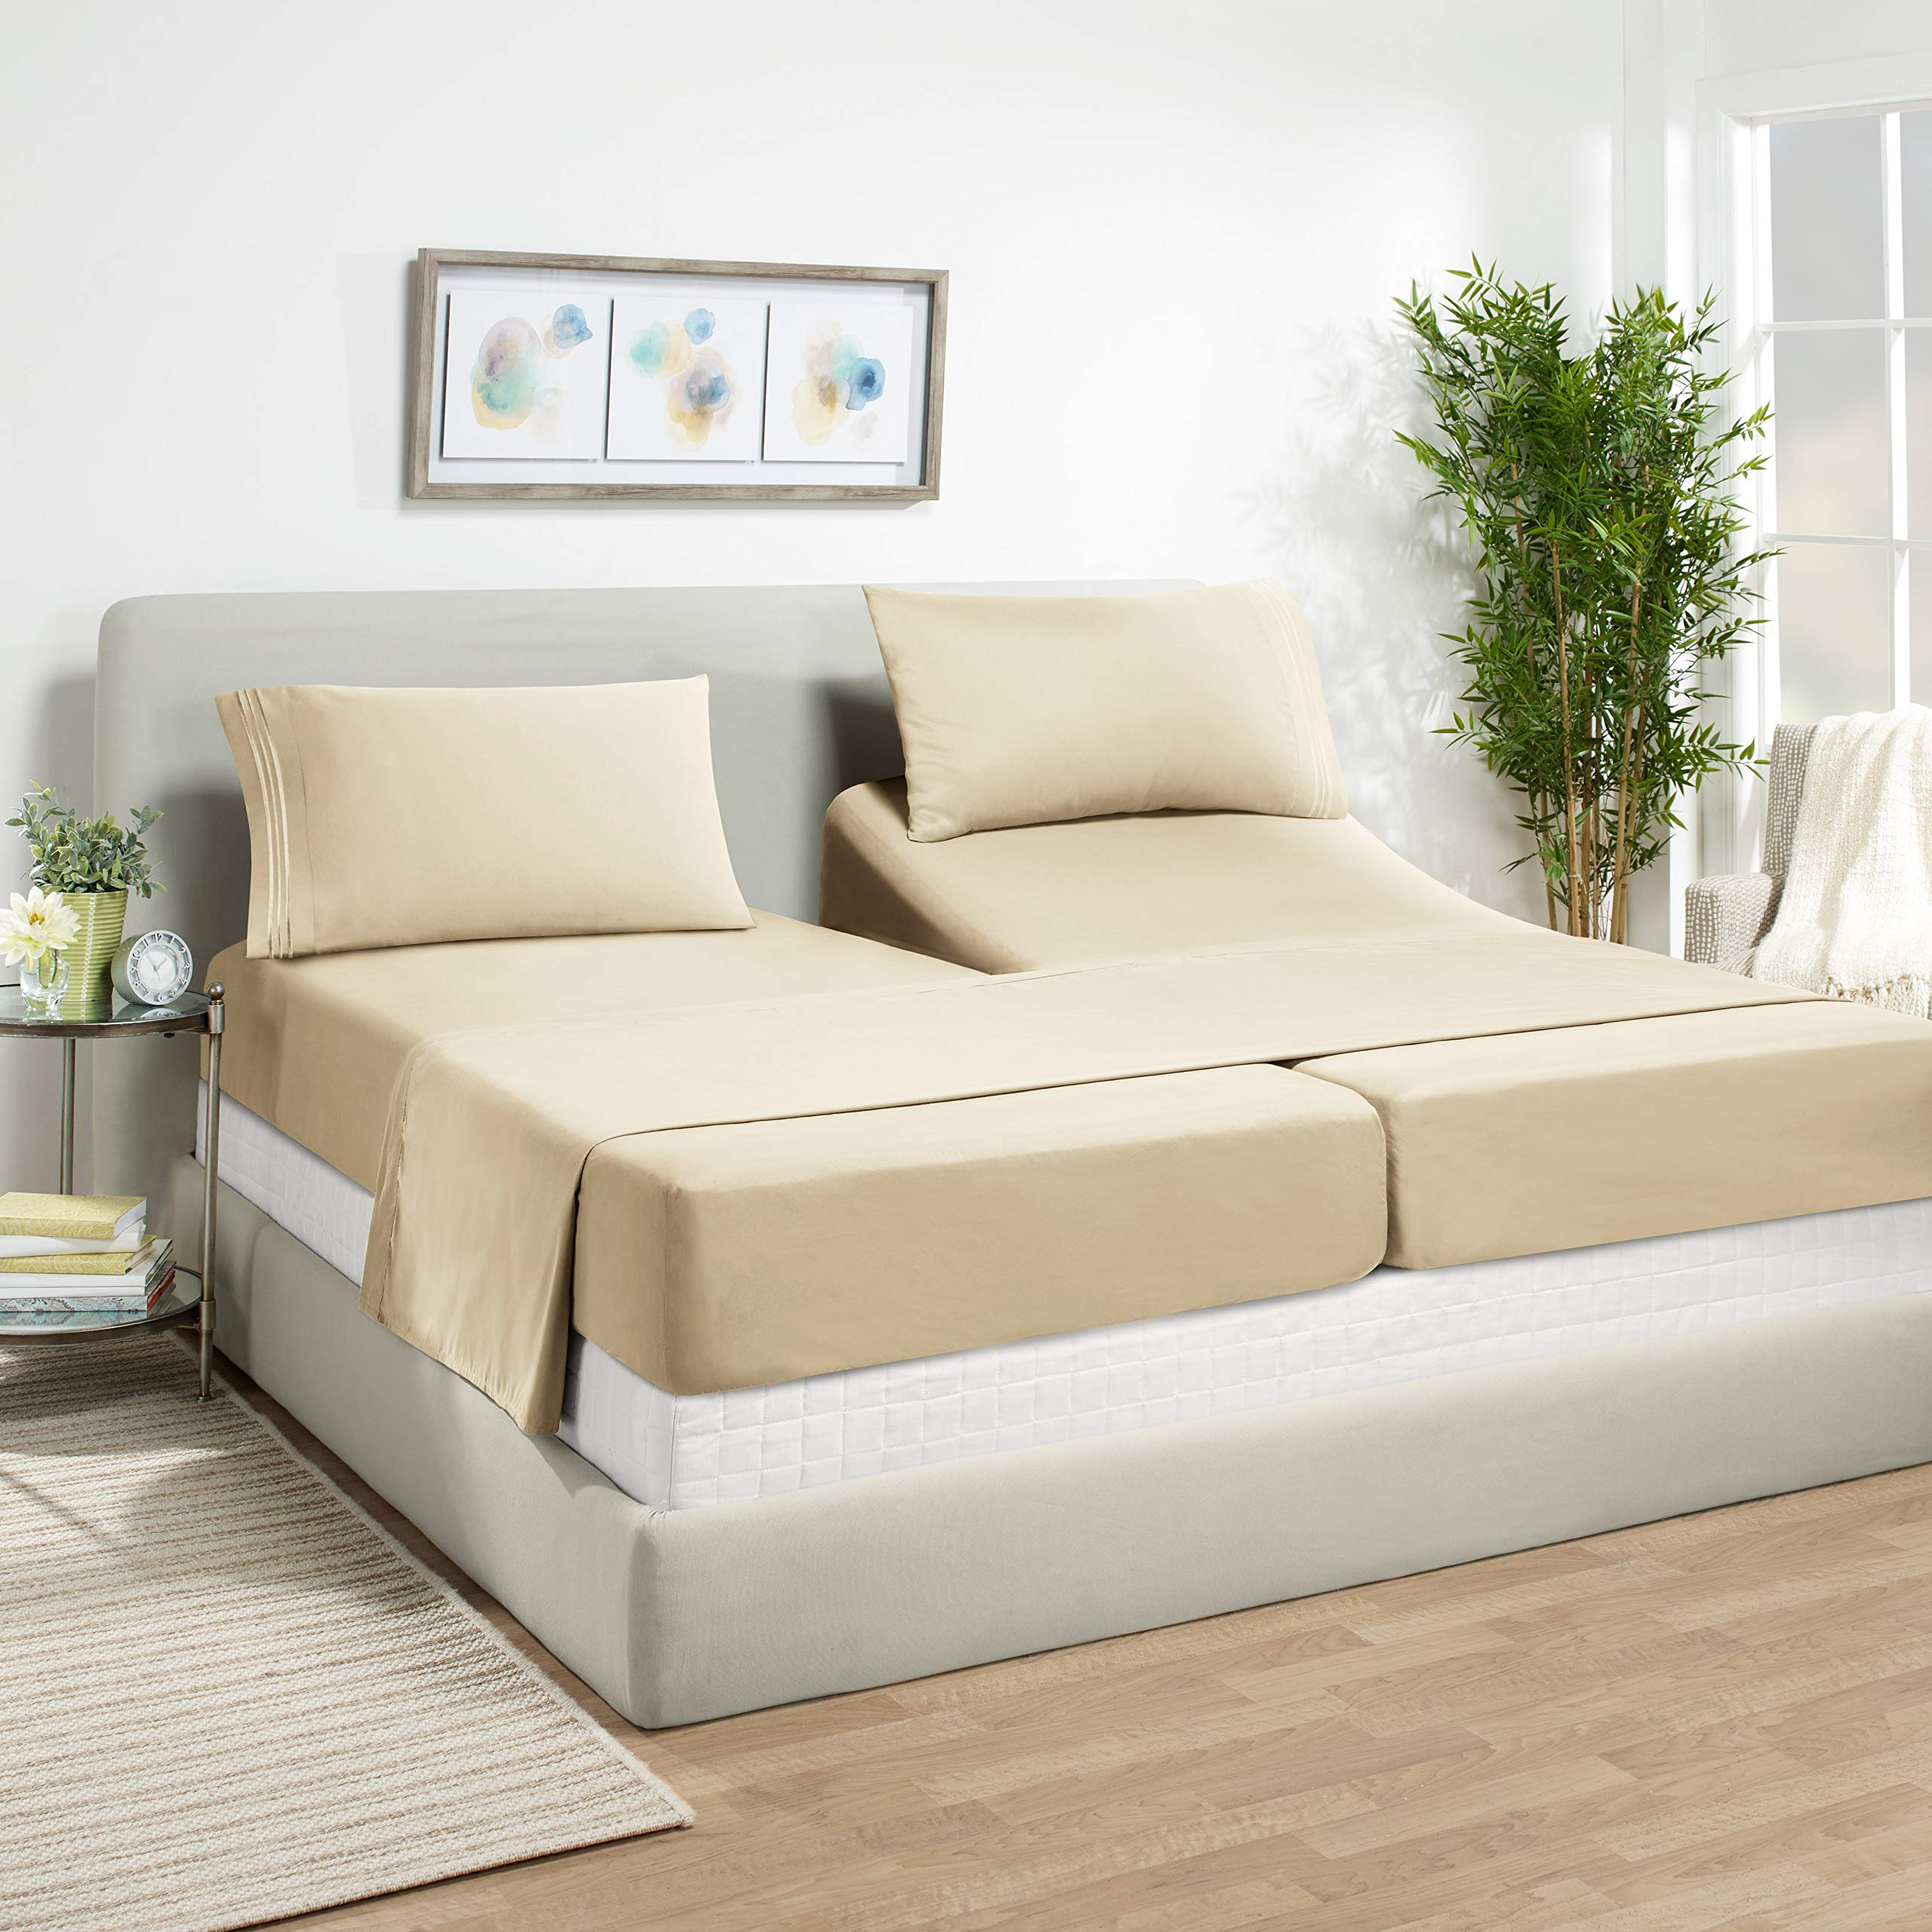 """Empyrean Bedding 14"""" - 16"""" Deep Pocket Fitted Sheet 5 Piece Set - Super Soft Double Brushed Microfiber Top Sheet - Wrinkle Free 2 Fitted Bed Sheets, 1 Flat Sheet and 2 Pillow Cases - Split King, Beige"""